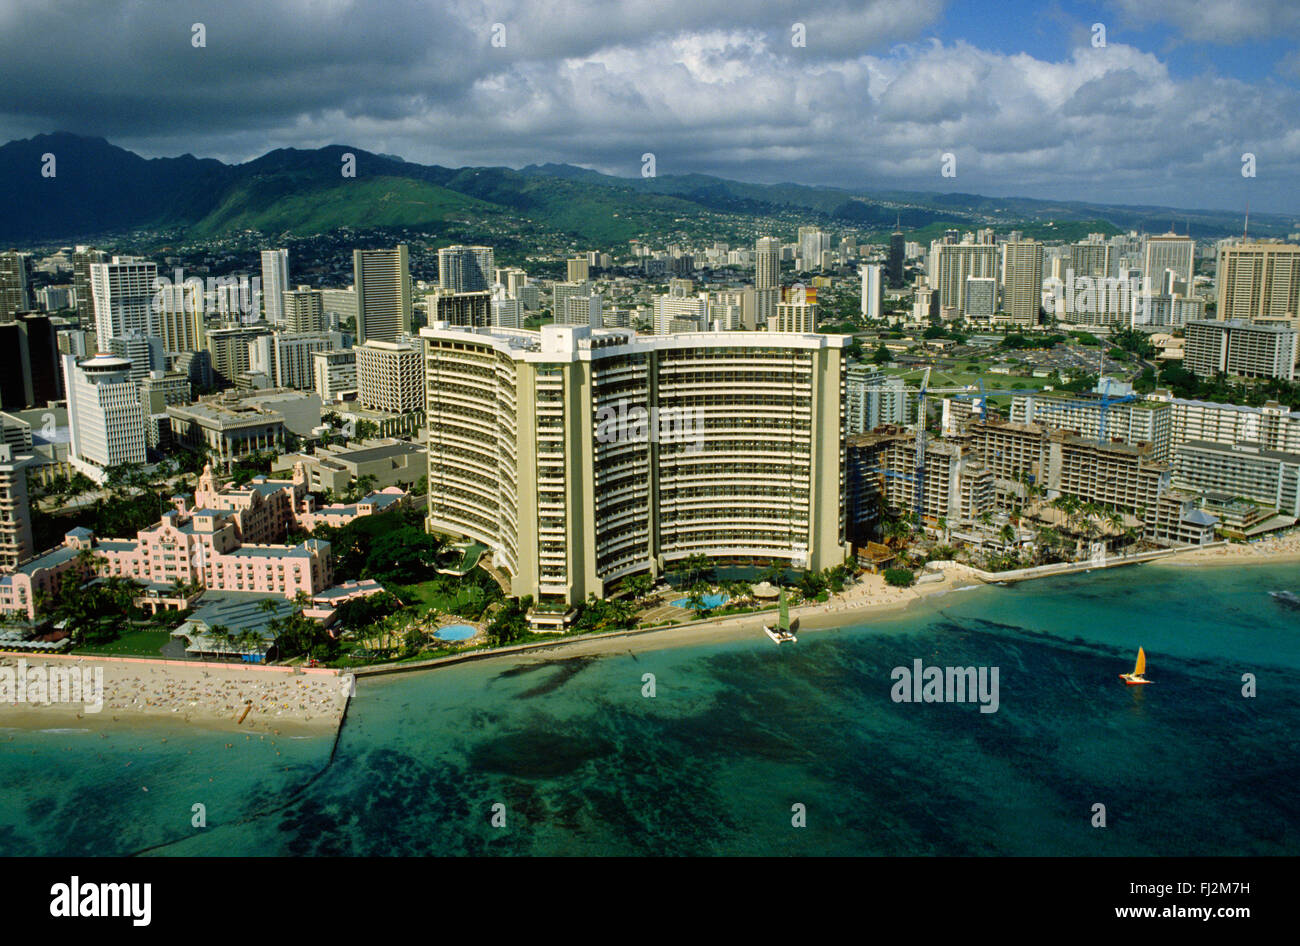 sheraton hotel on waikiki beach oahu hawaii stock photo. Black Bedroom Furniture Sets. Home Design Ideas